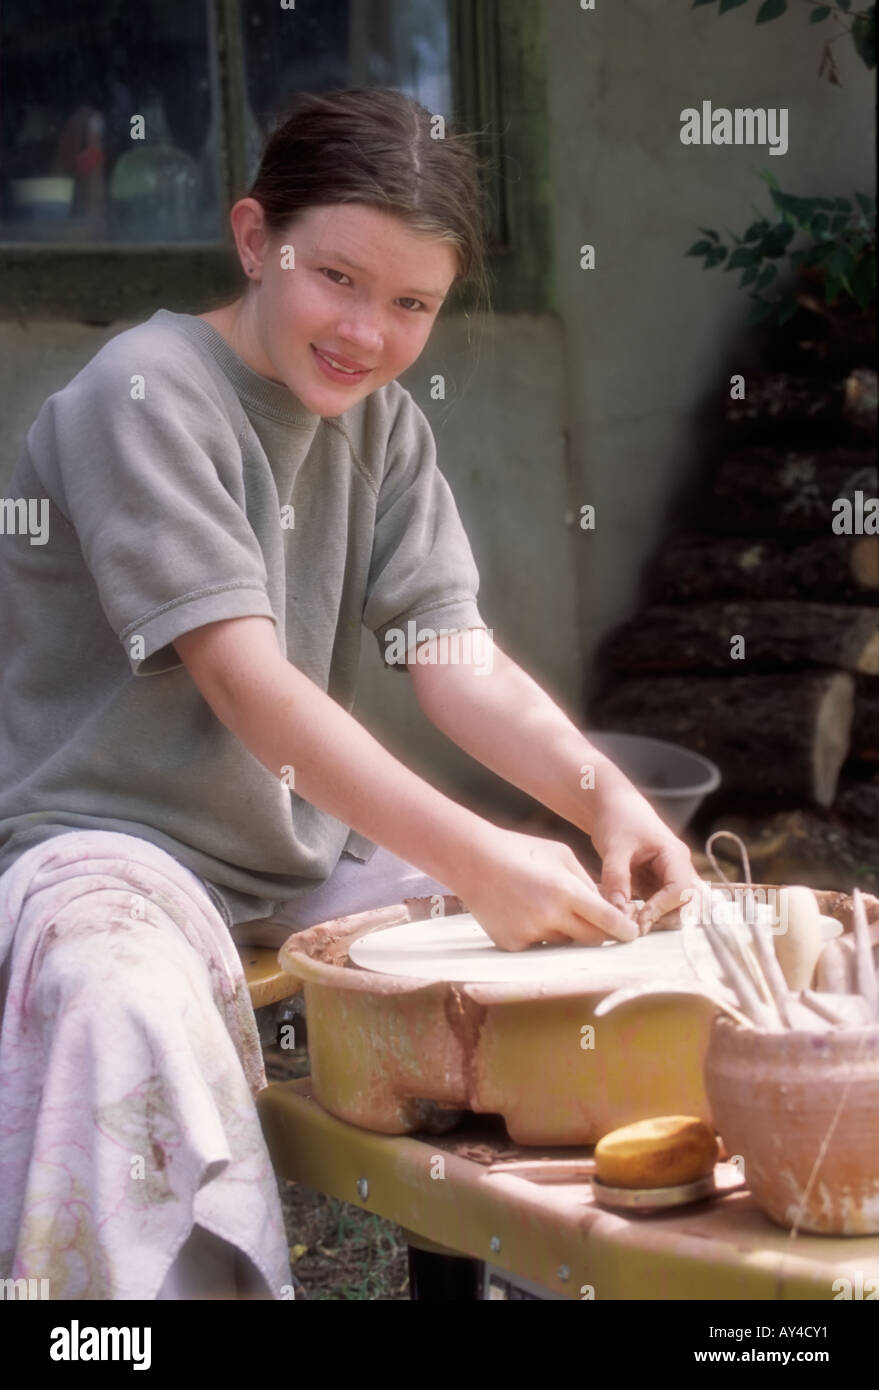 MR 0275 Teen artist Charlotte Pekelsma works with clay on the potter's wheel in Capitan, New Mexico. Stock Photo